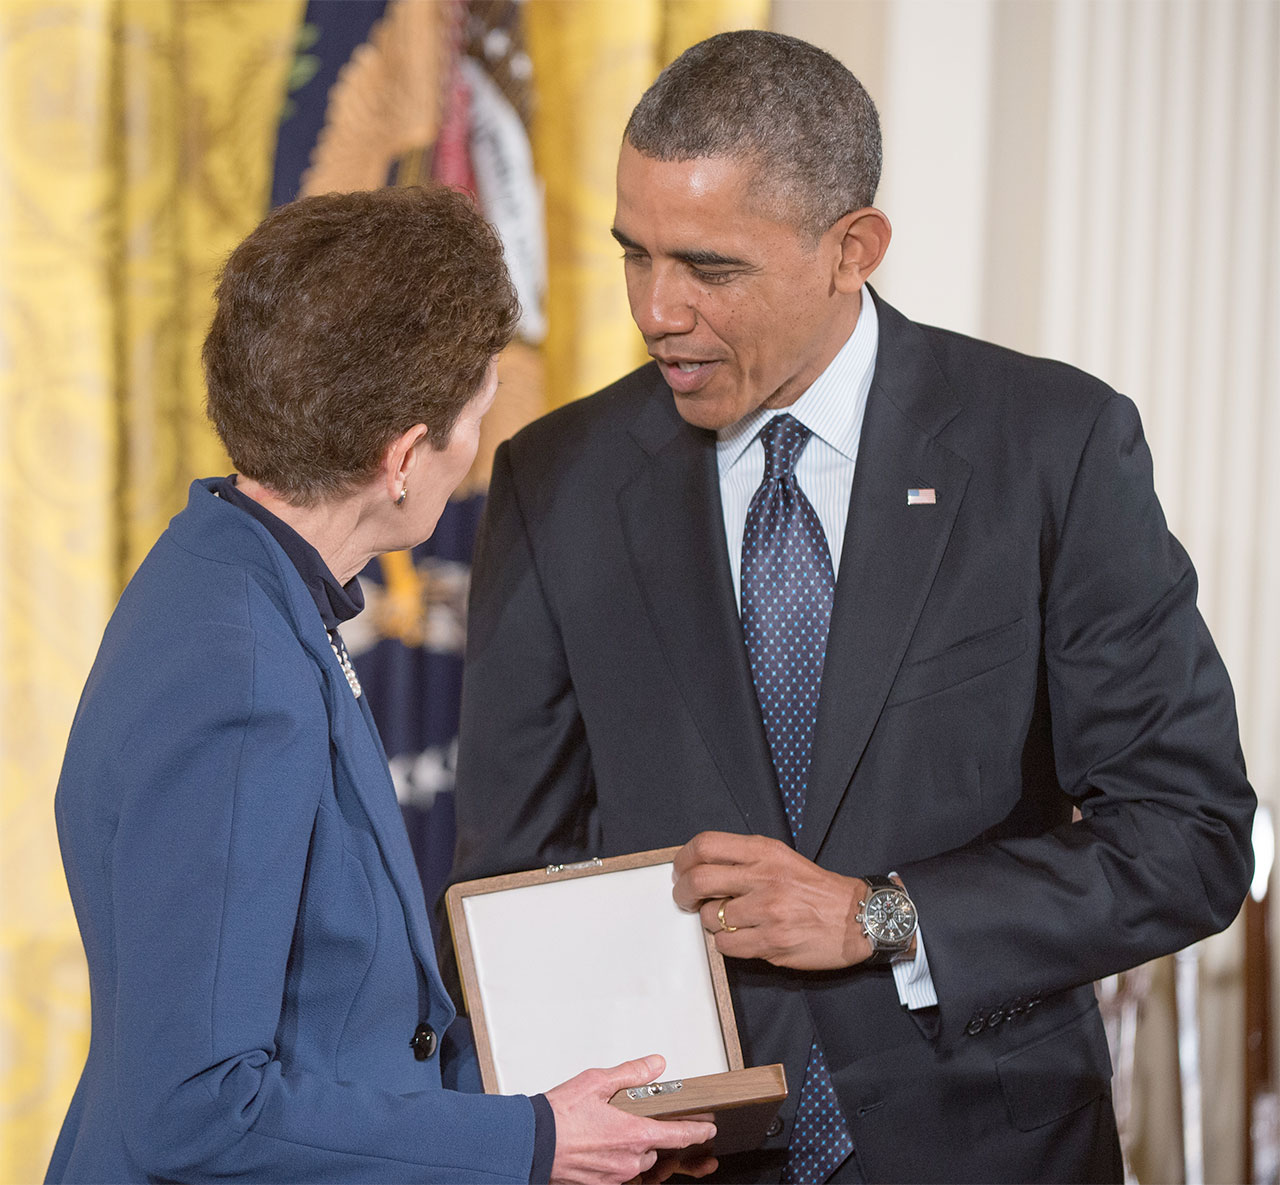 Tam O'Shaughnessy Accepts Medal of Freedom on Behalf of Ride